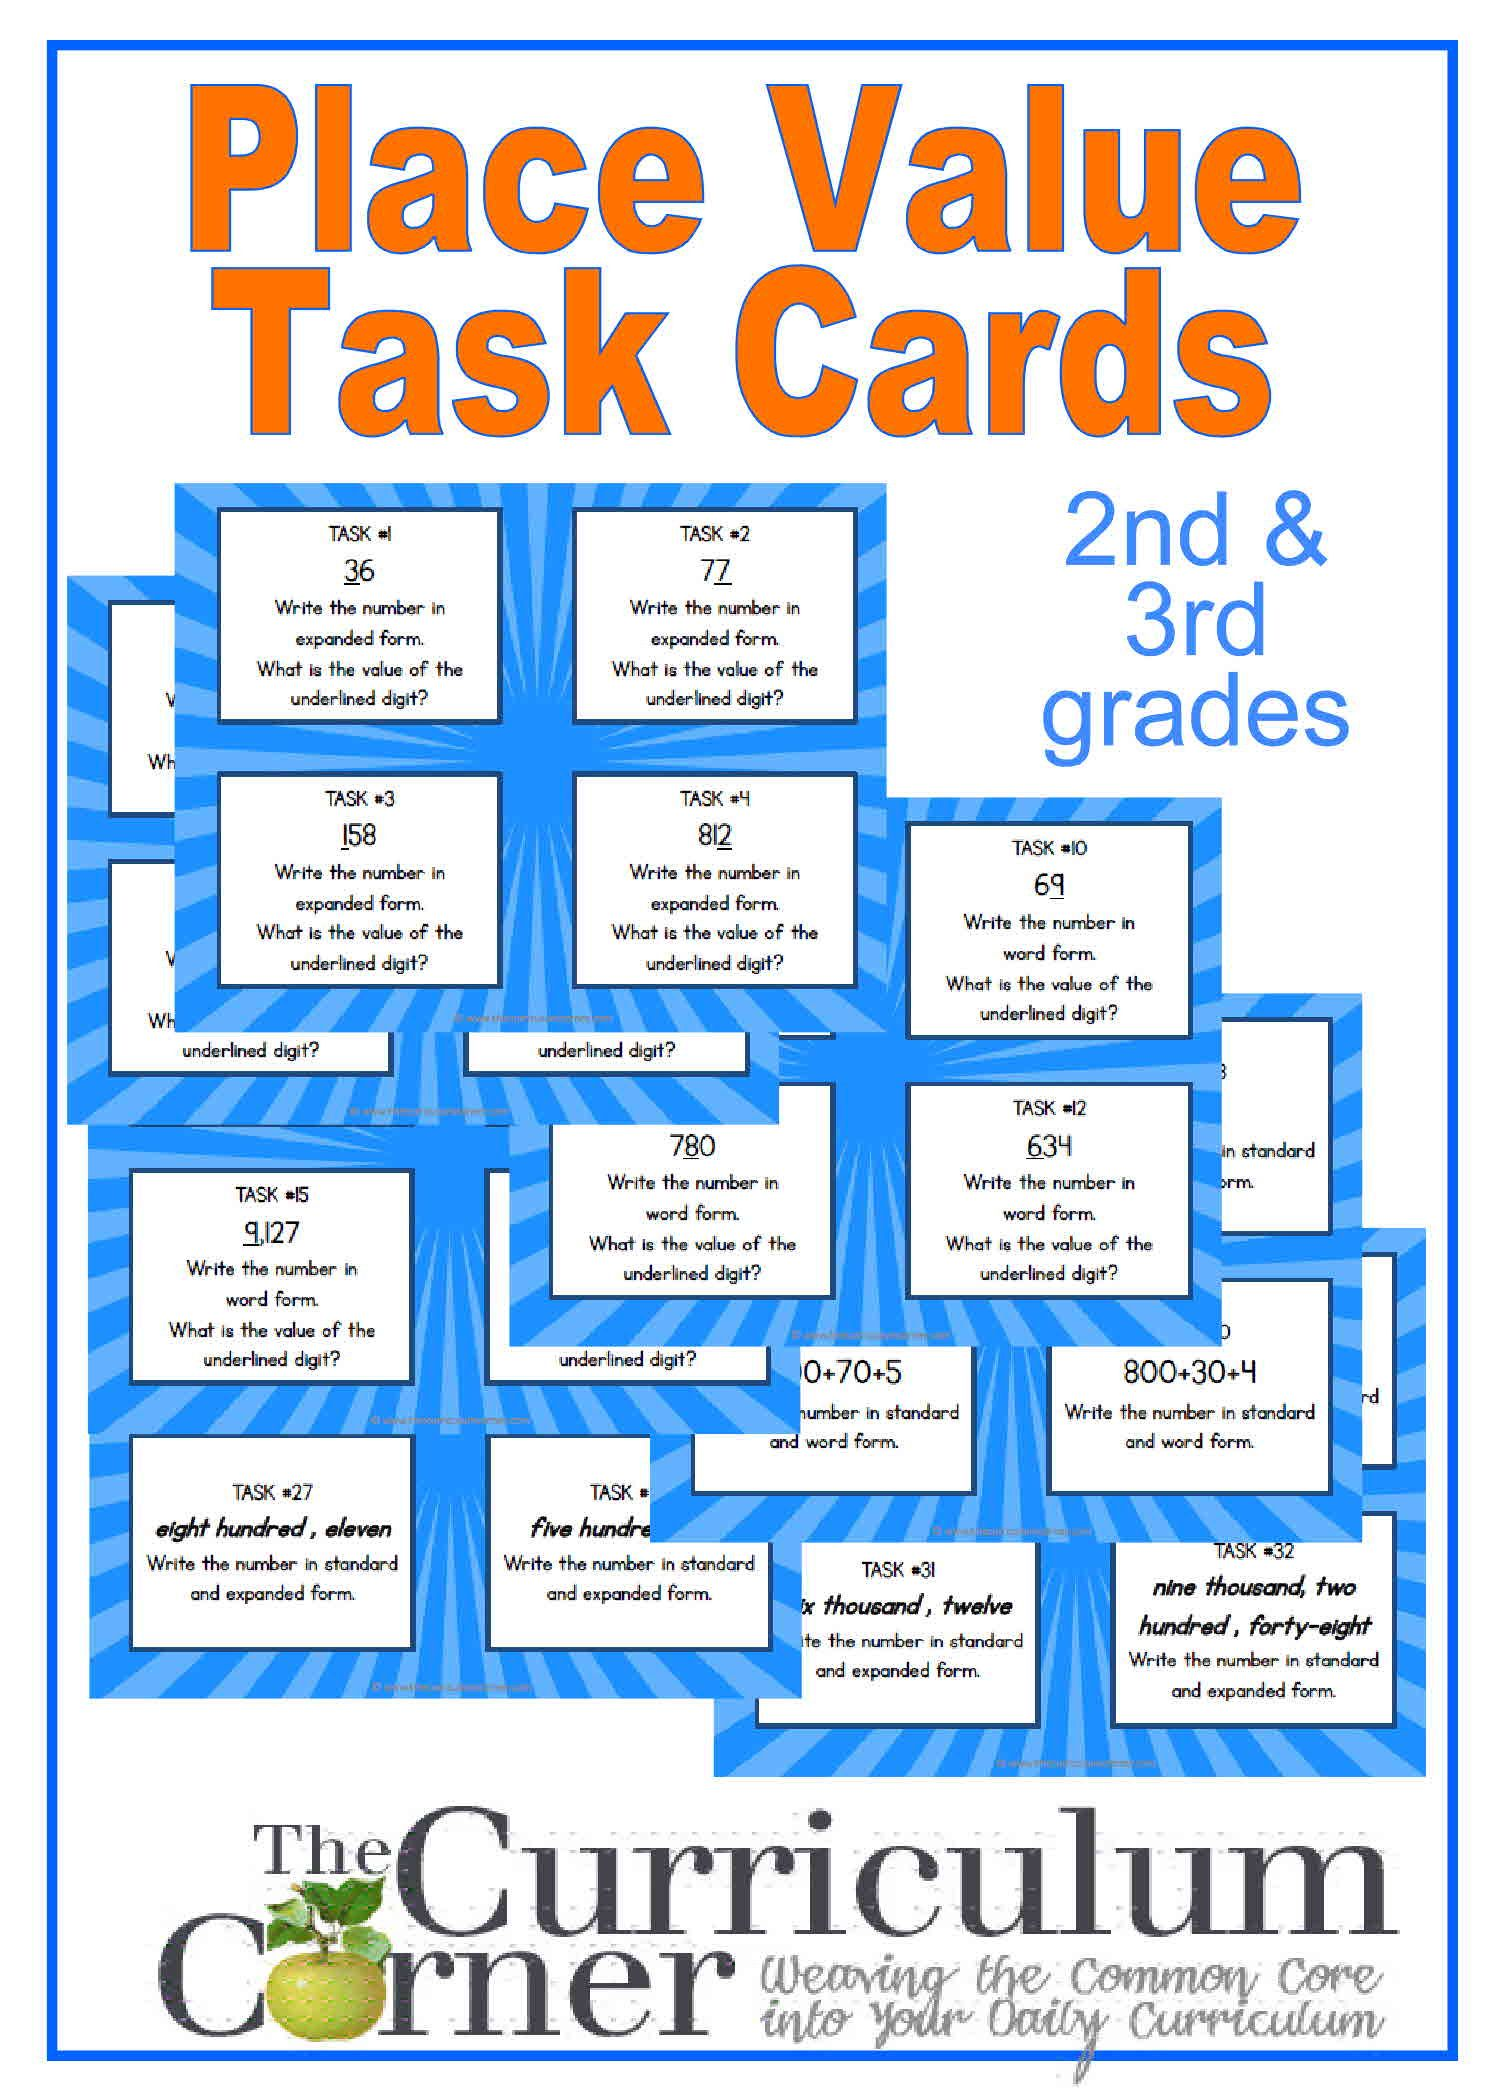 Place Value Task Cards For Primary Classrooms